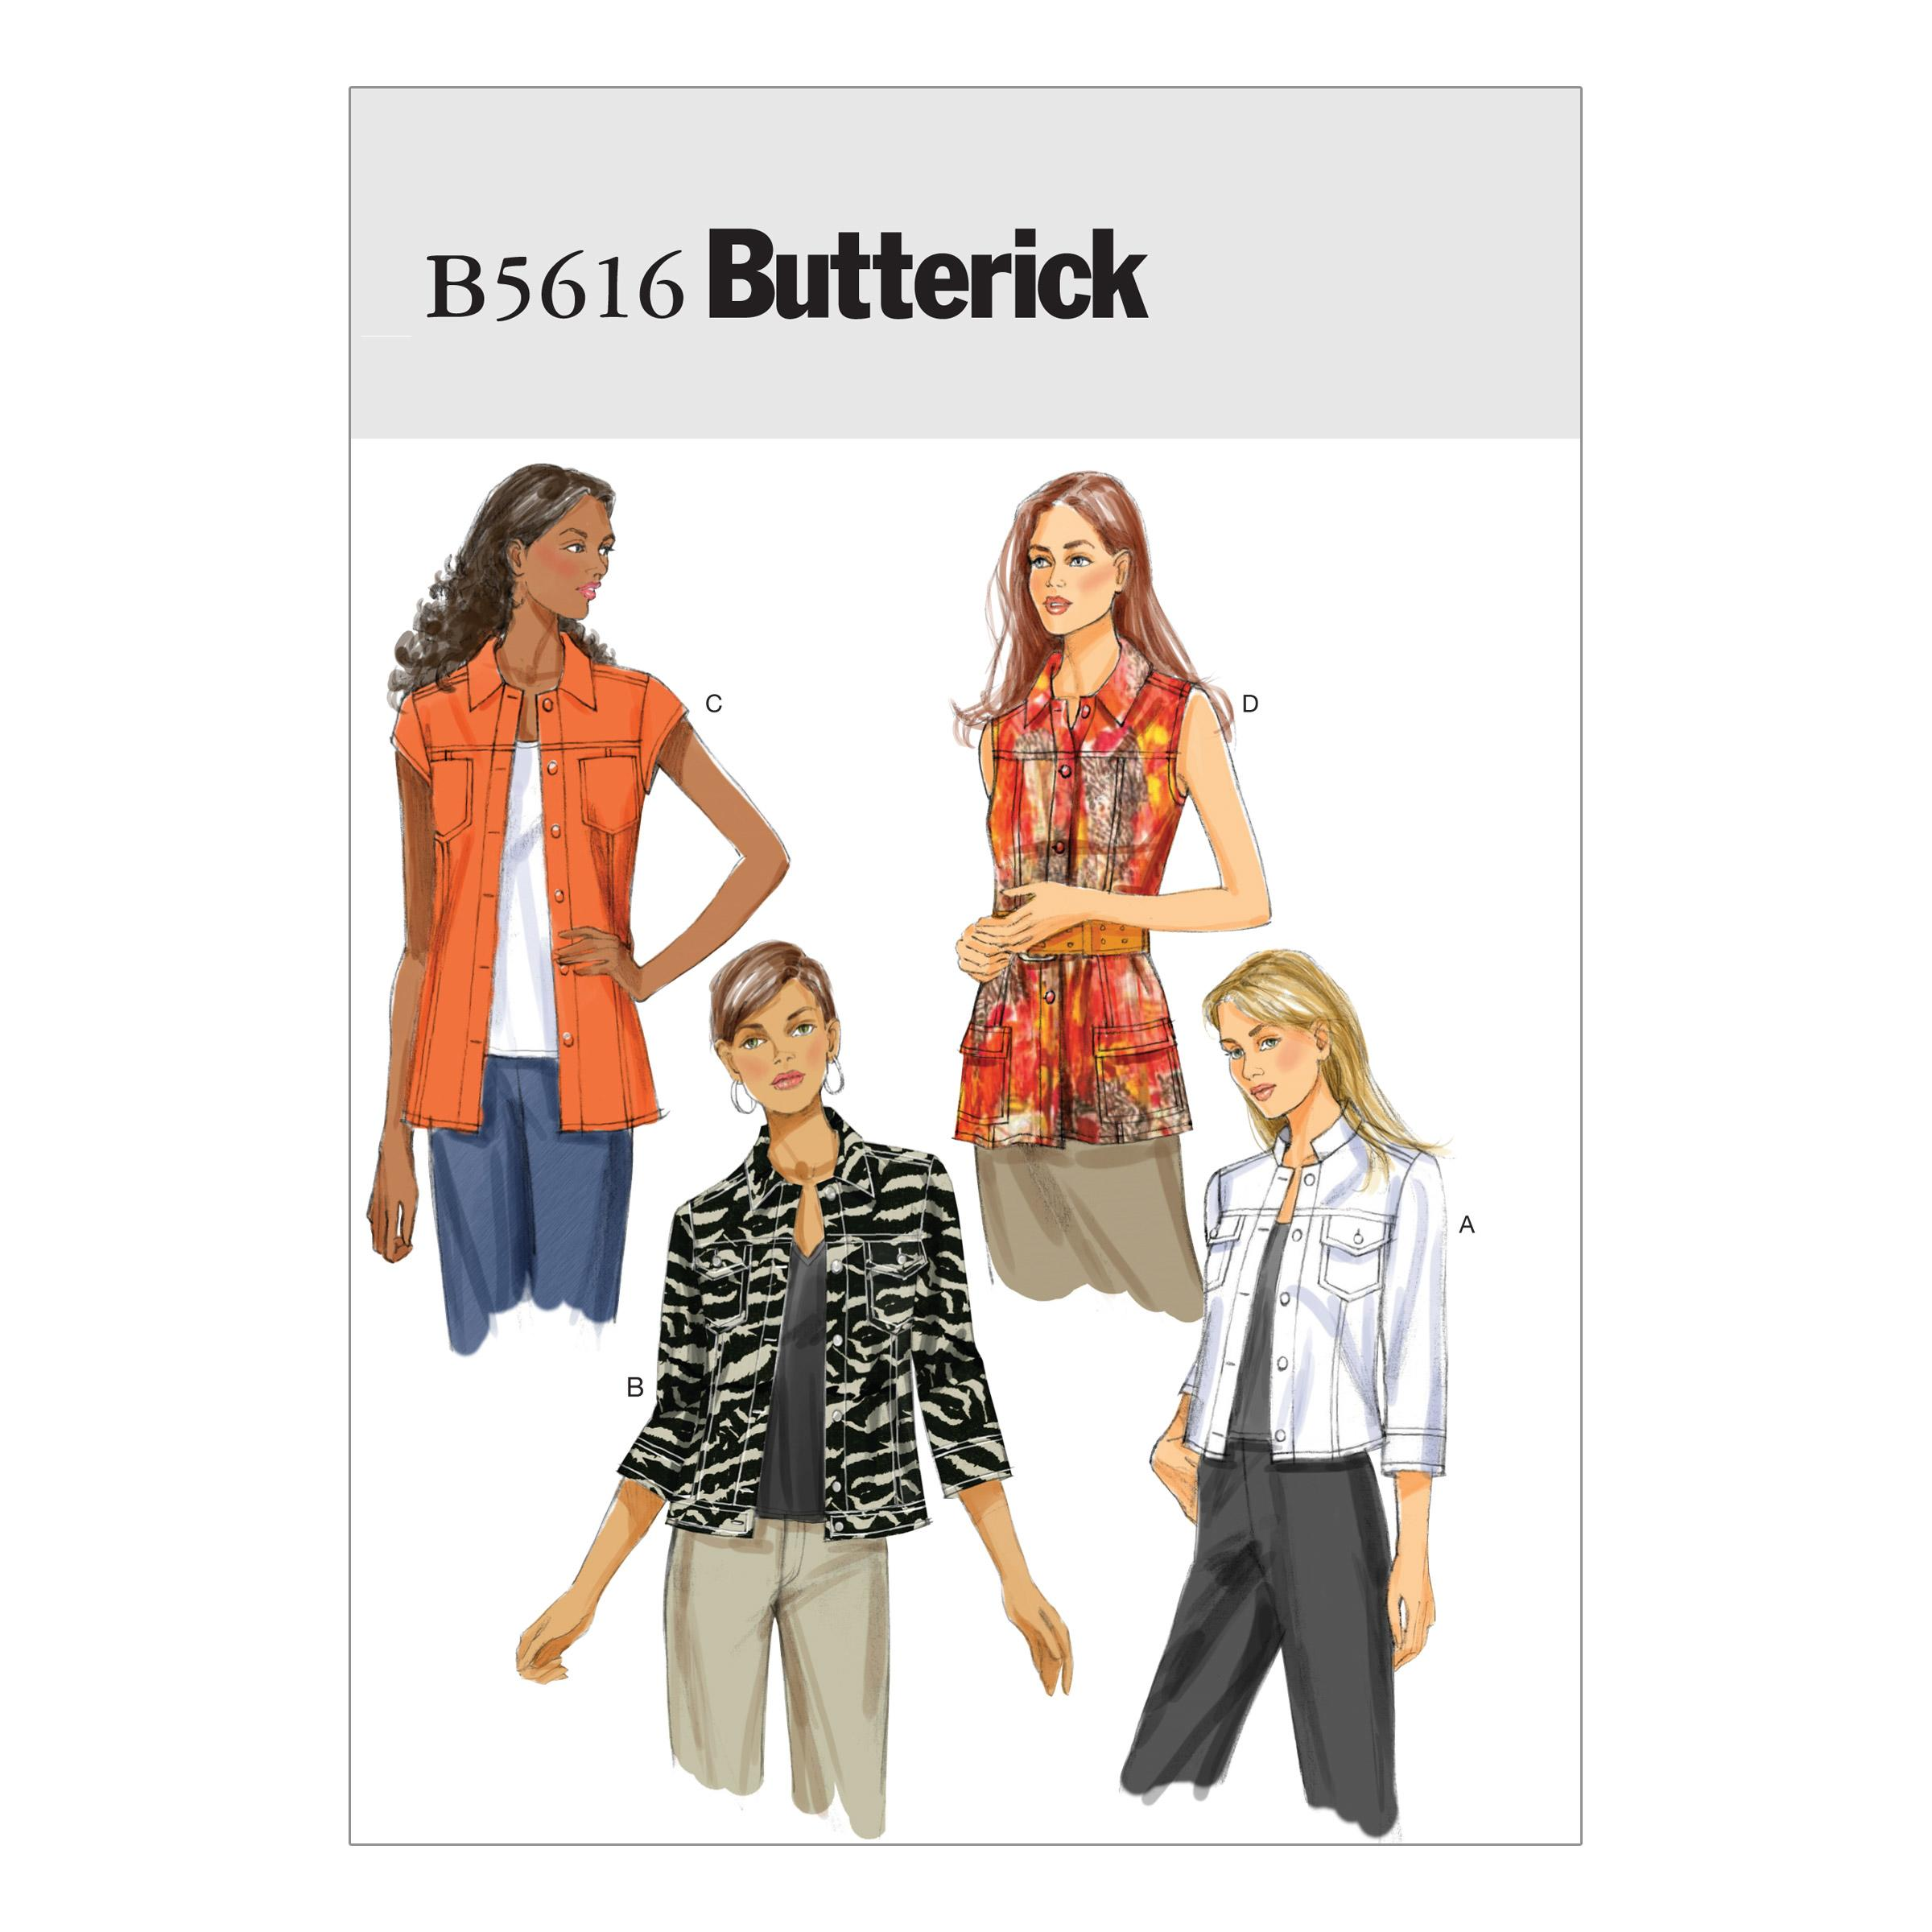 Butterick B5616 Misses' Jacket